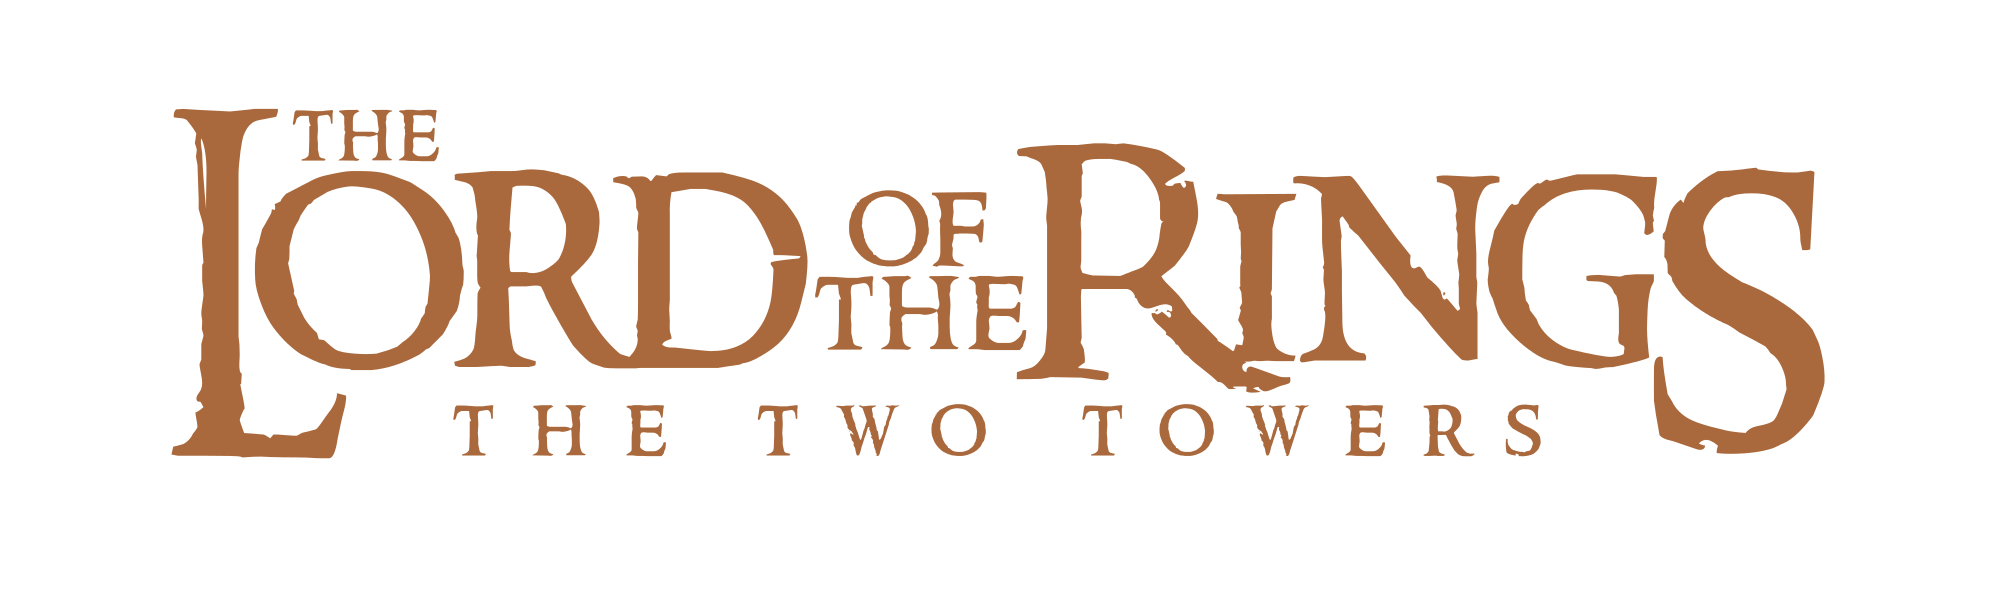 Lord Of The Rings svg #13, Download drawings